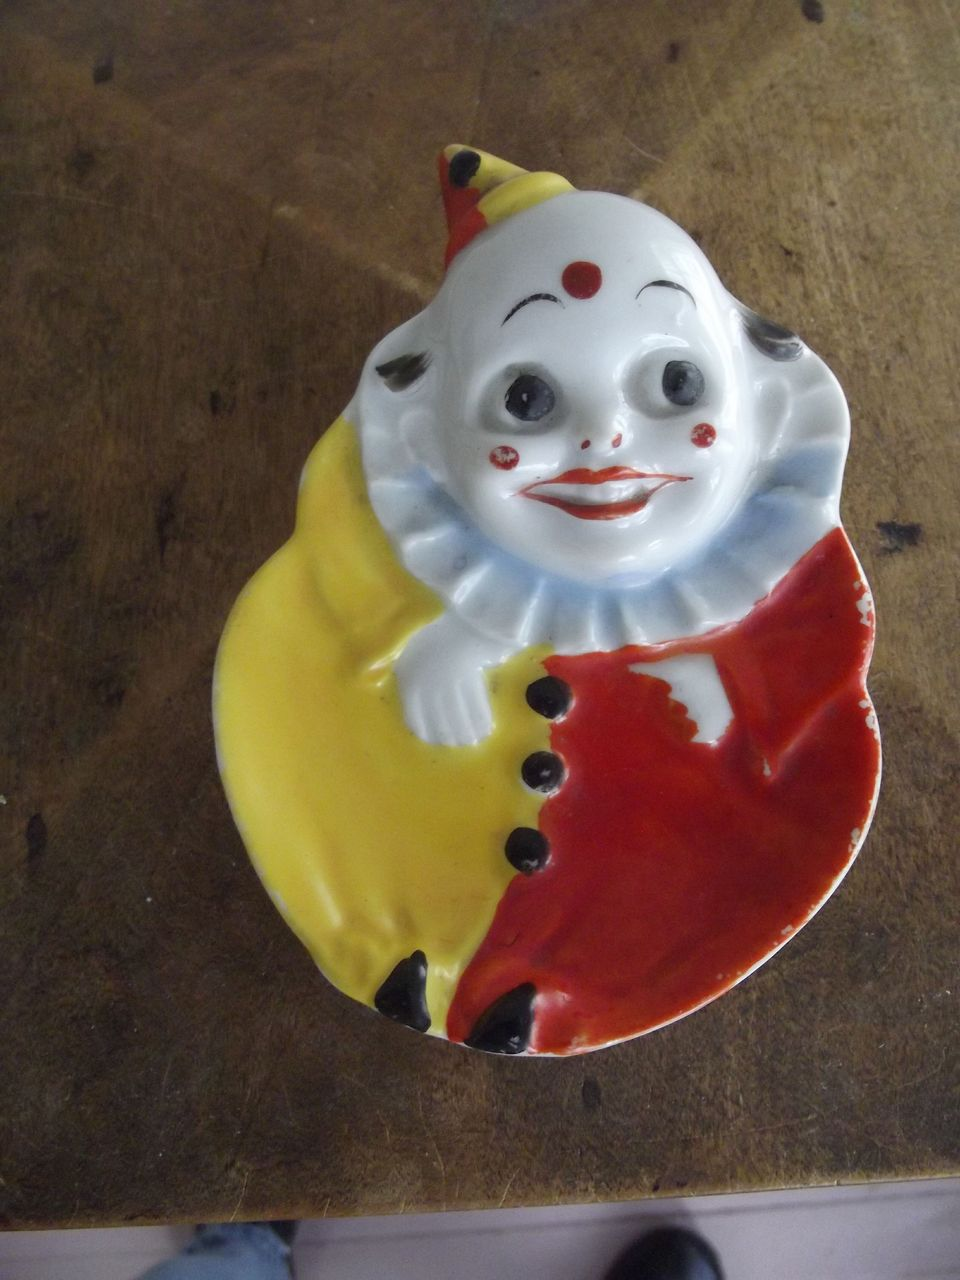 Googly Eyed Clown dish